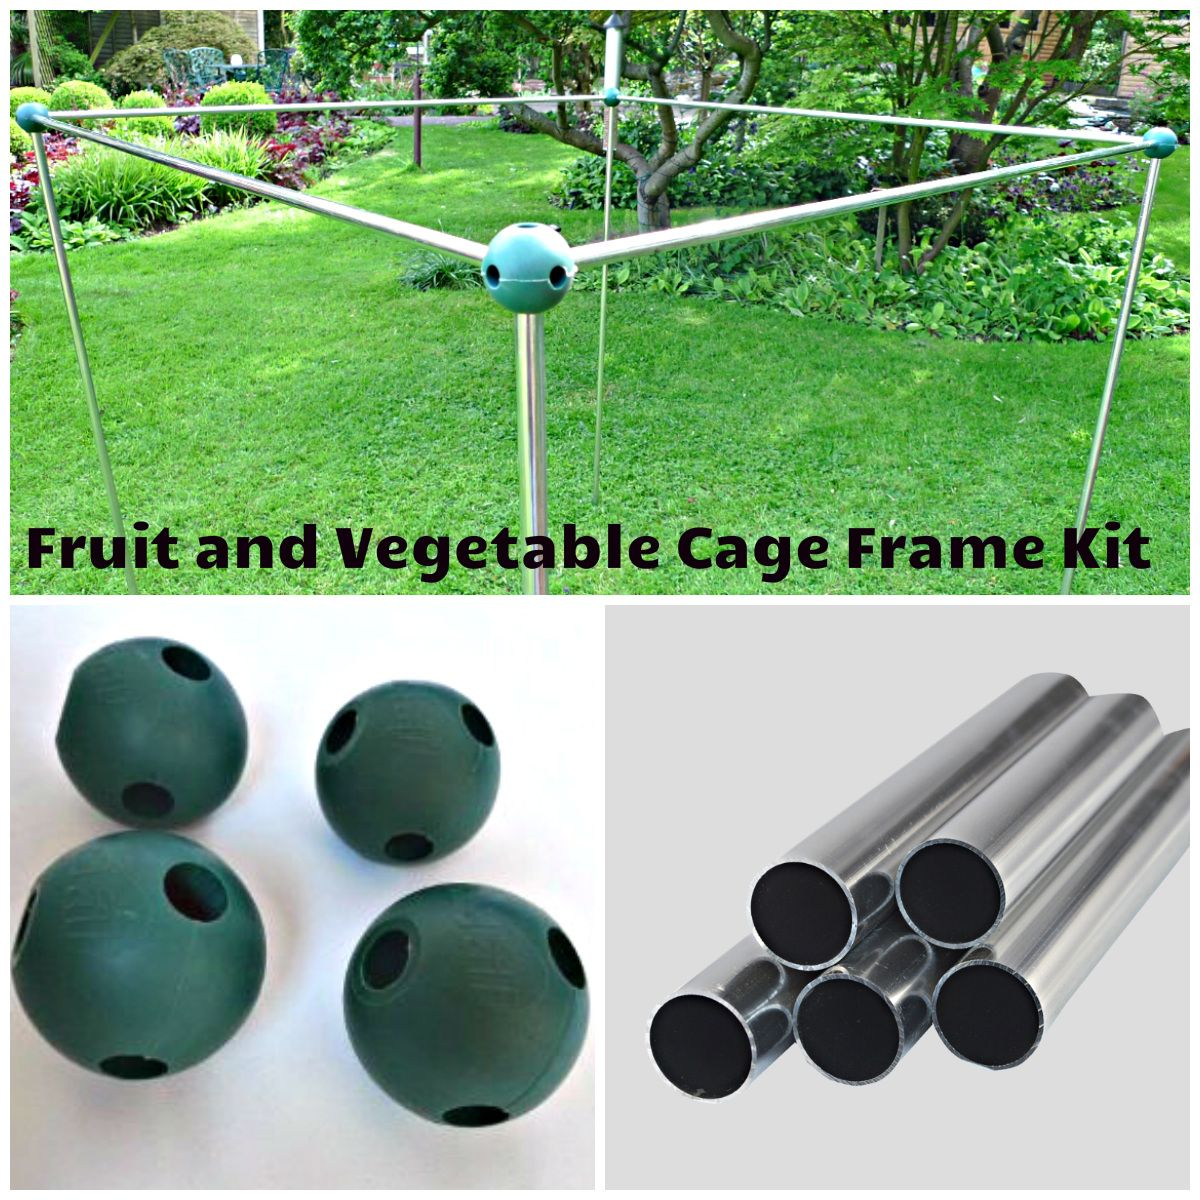 Veg Cage Build Your Own Frame Kit Silver Aluminium Kit Contains 4 Build A Ball Connectors 4 Horizontal Aluminium Tubes And Frame Outdoor Decor Wind Chimes